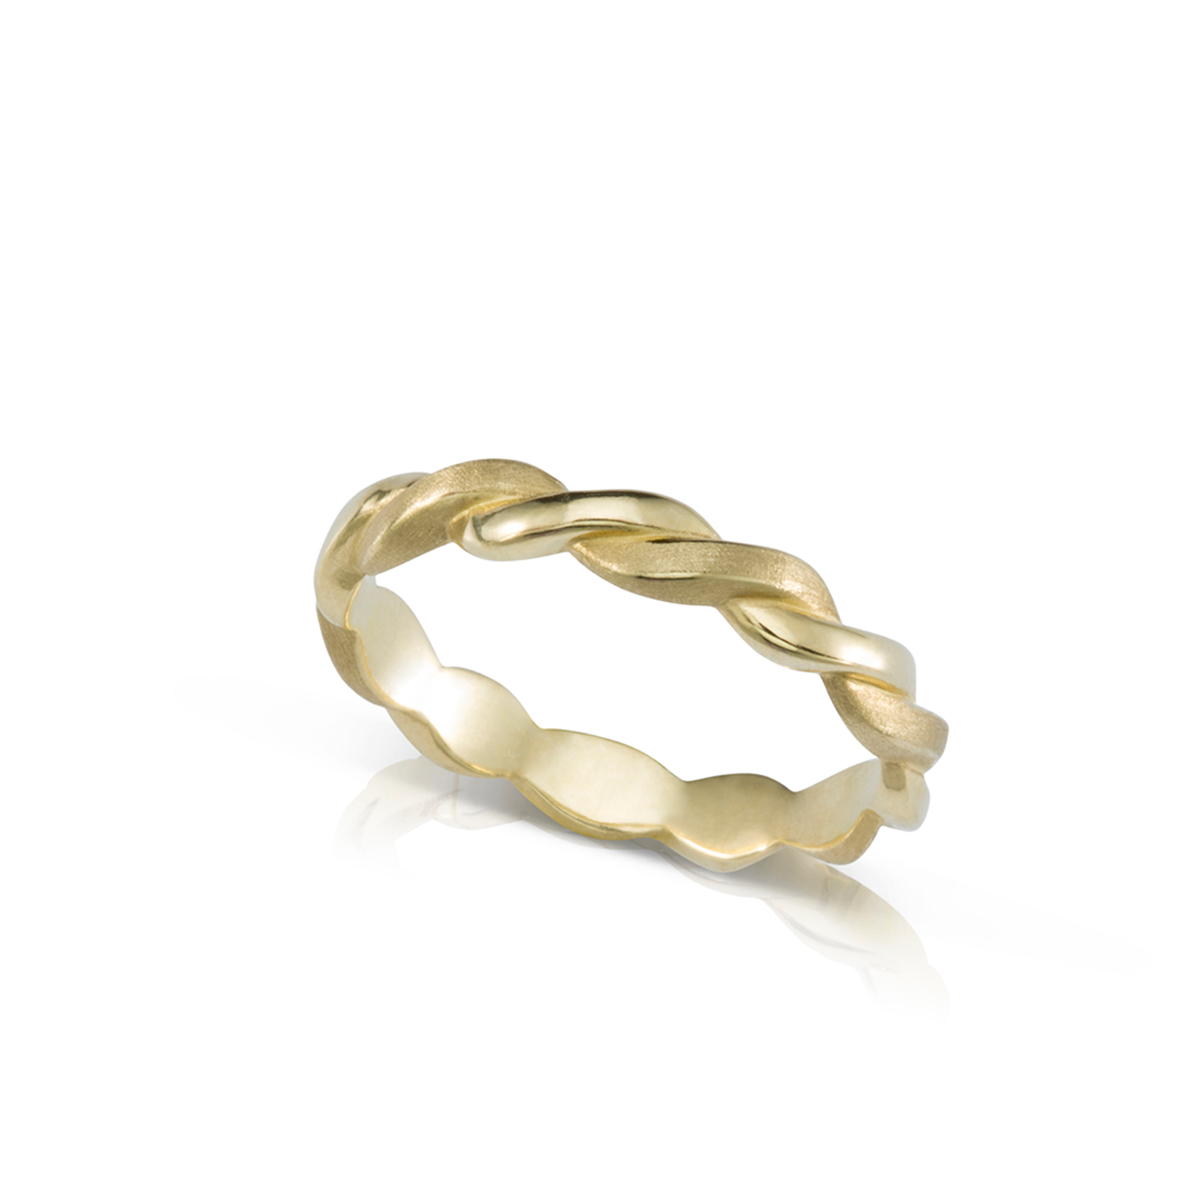 3 mm braided gold ring